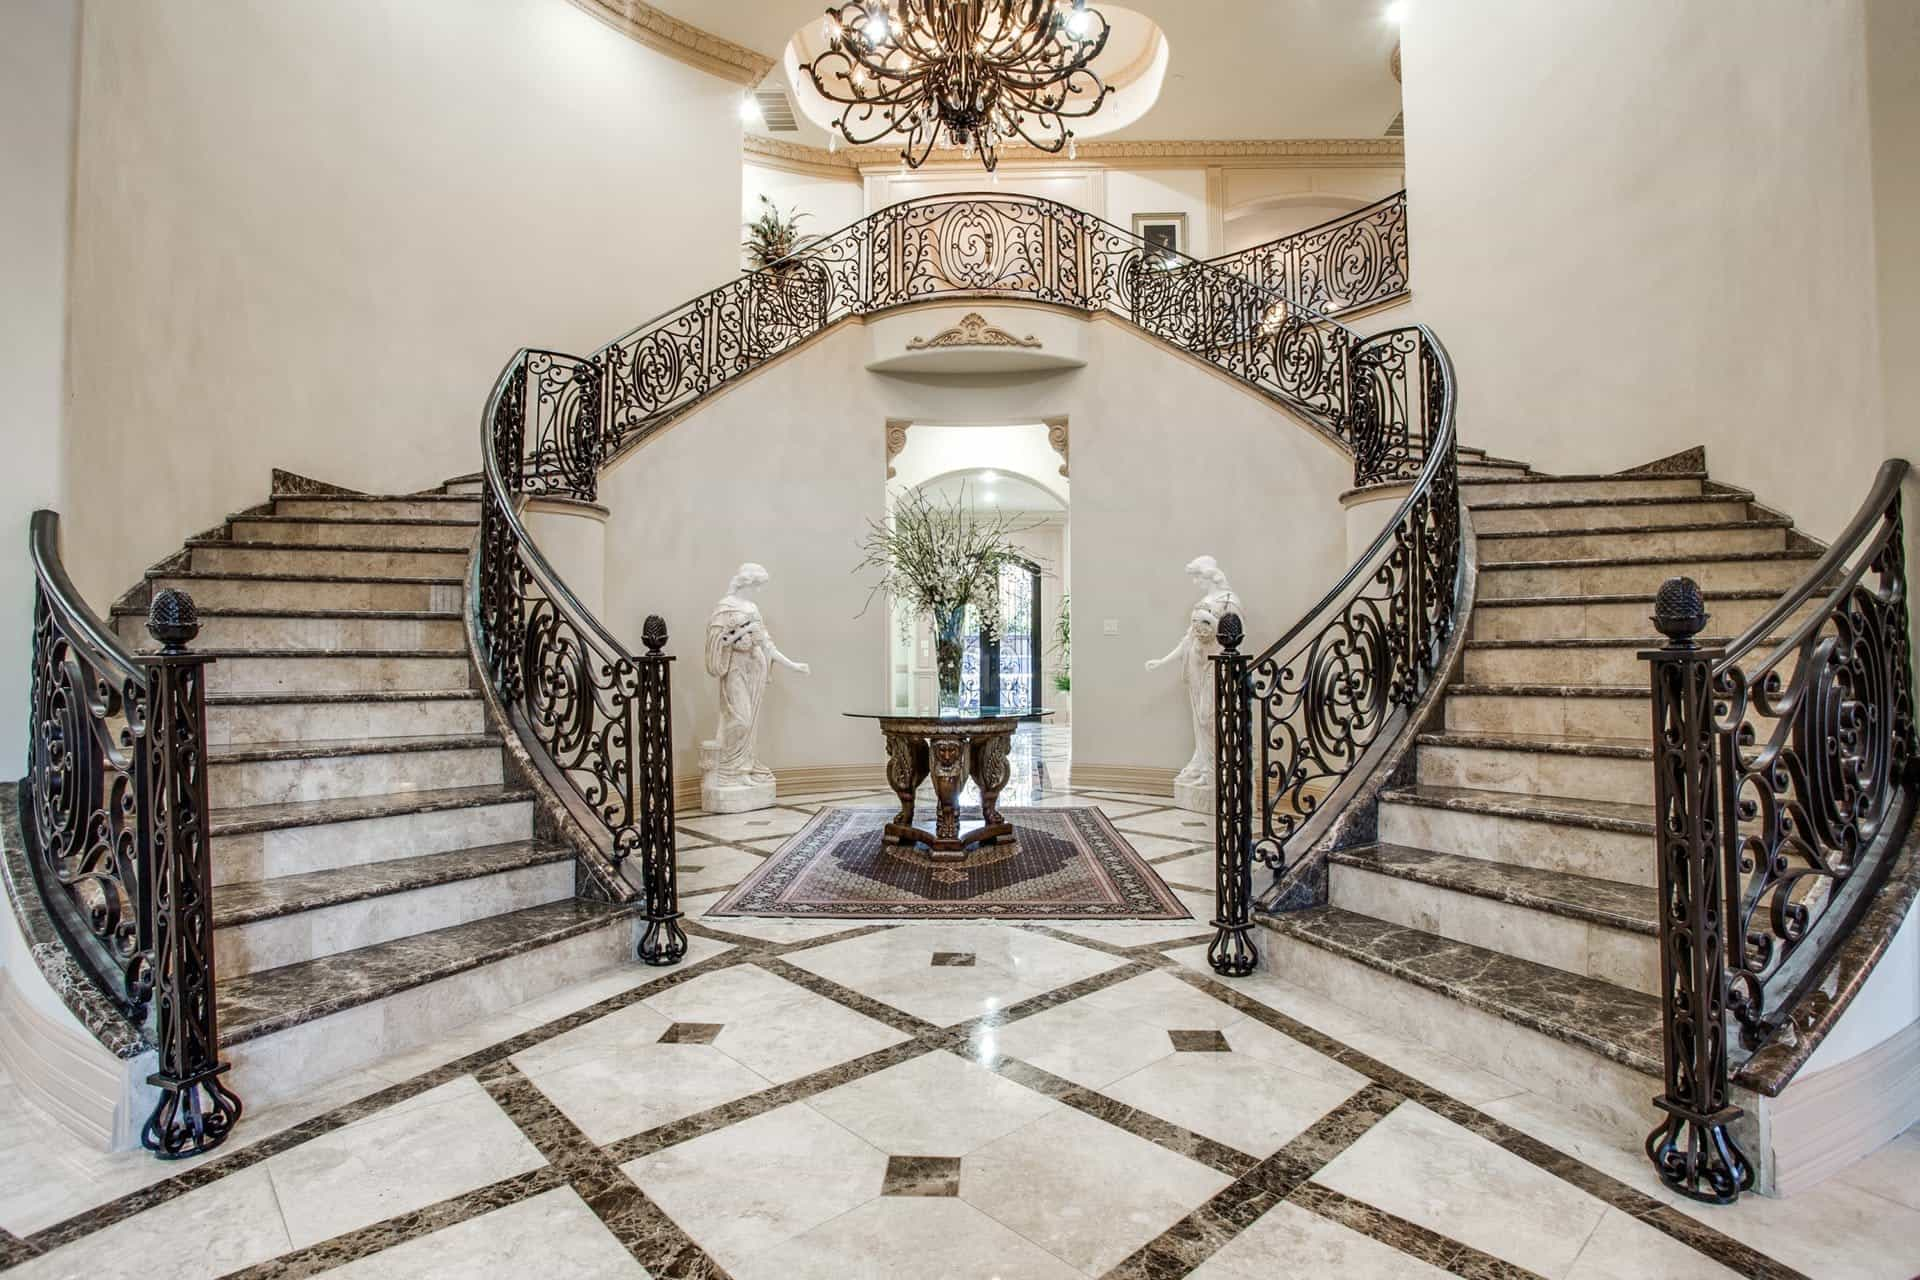 Mediterranean Inspired Living Room With Luxurious Marble Floors And A Double Staircase With Stunning Chandelier (Photo 11 of 13)